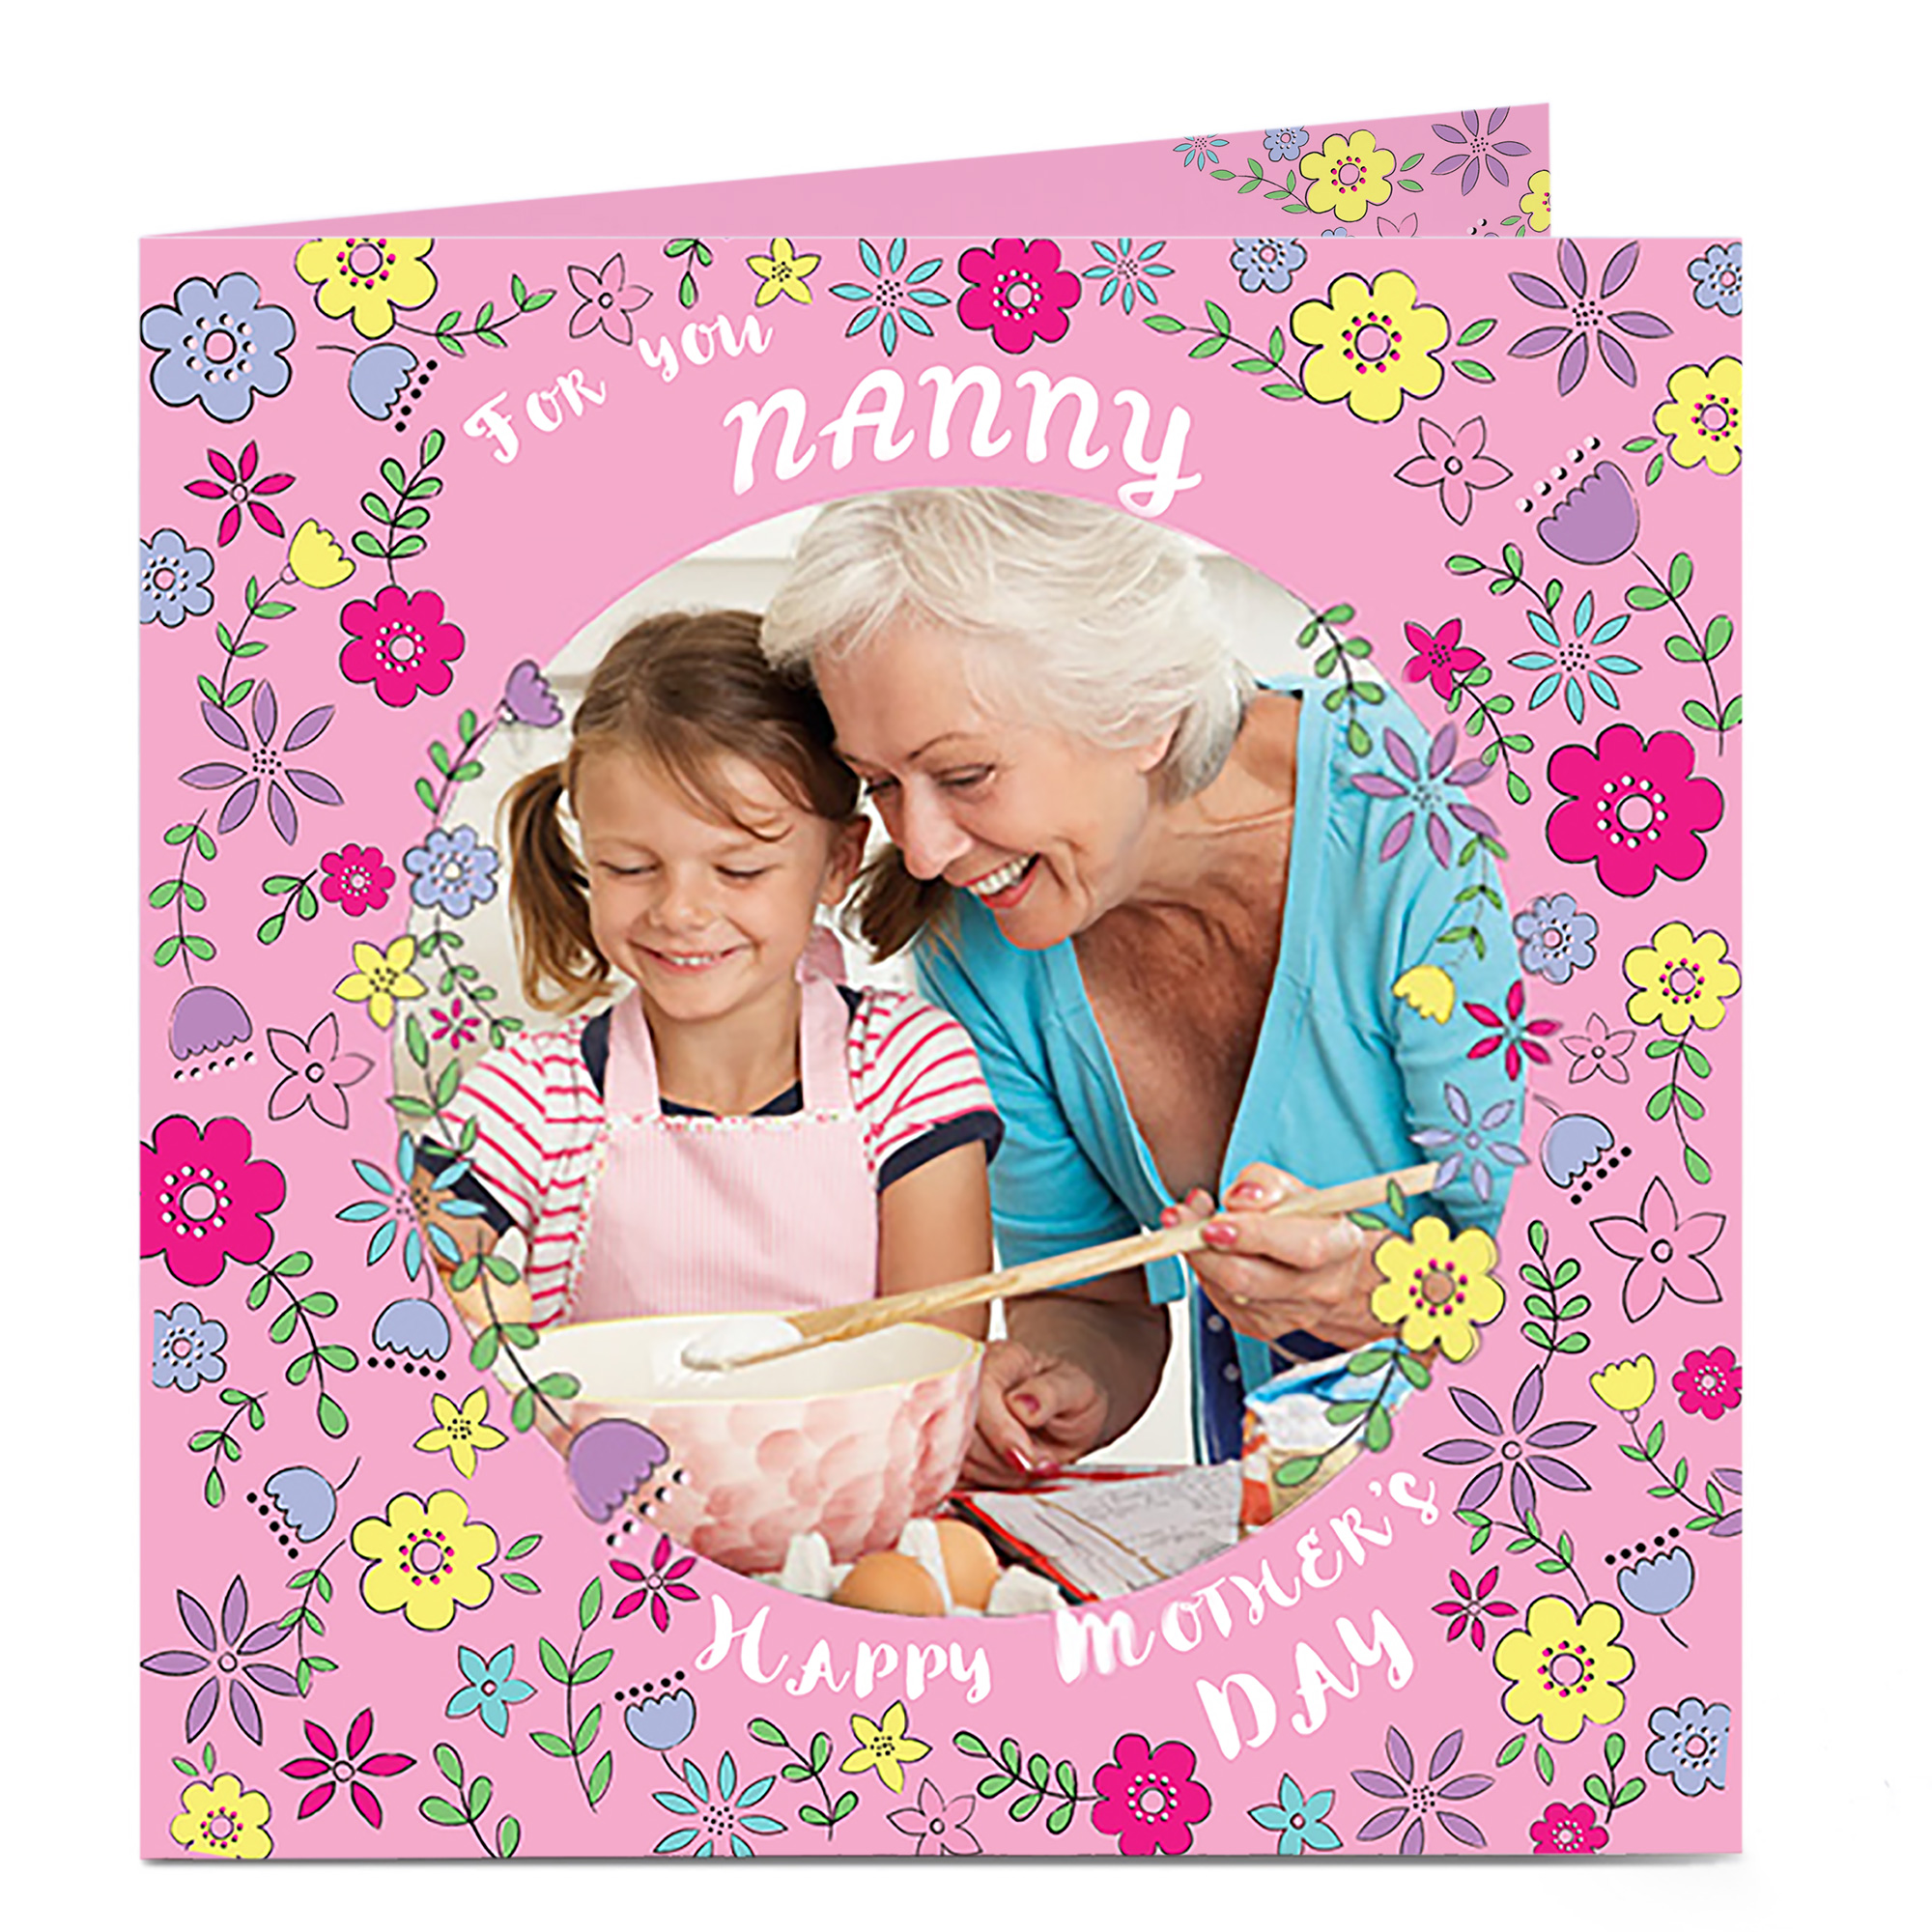 Photo Mother's Day Card - Nanny, Floral Downpour